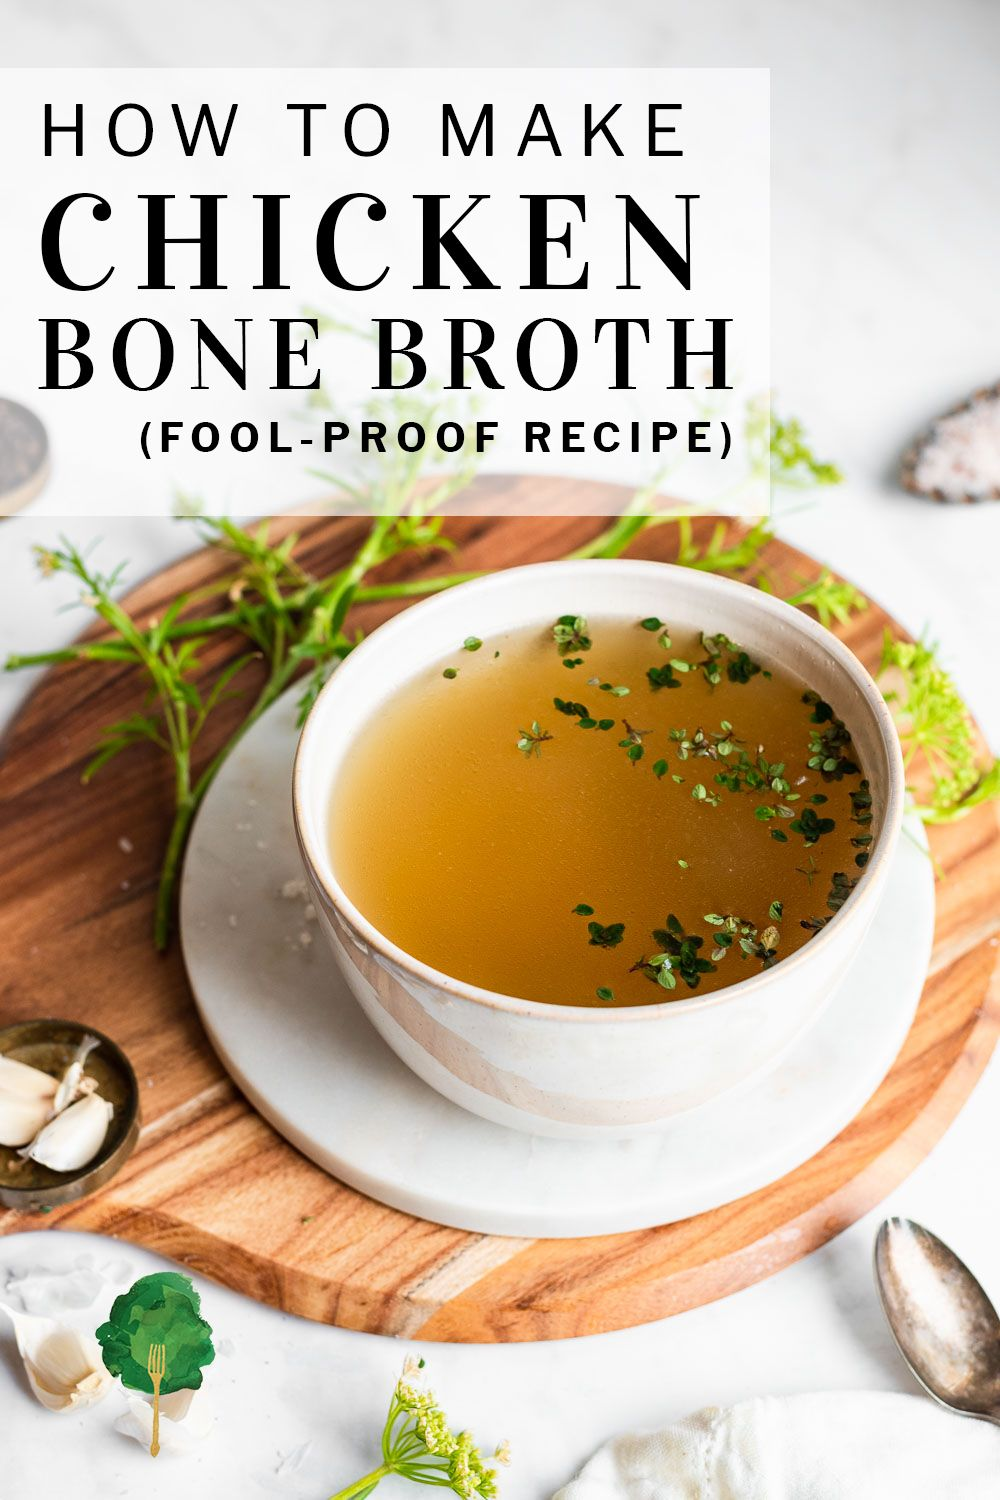 Chicken Bone Broth Tastes Deeply Savory With Notes Of Onions And Herbs It S Delicious When You Sip It On In 2021 Chicken Bone Broth Recipe Fool Proof Recipes Recipes